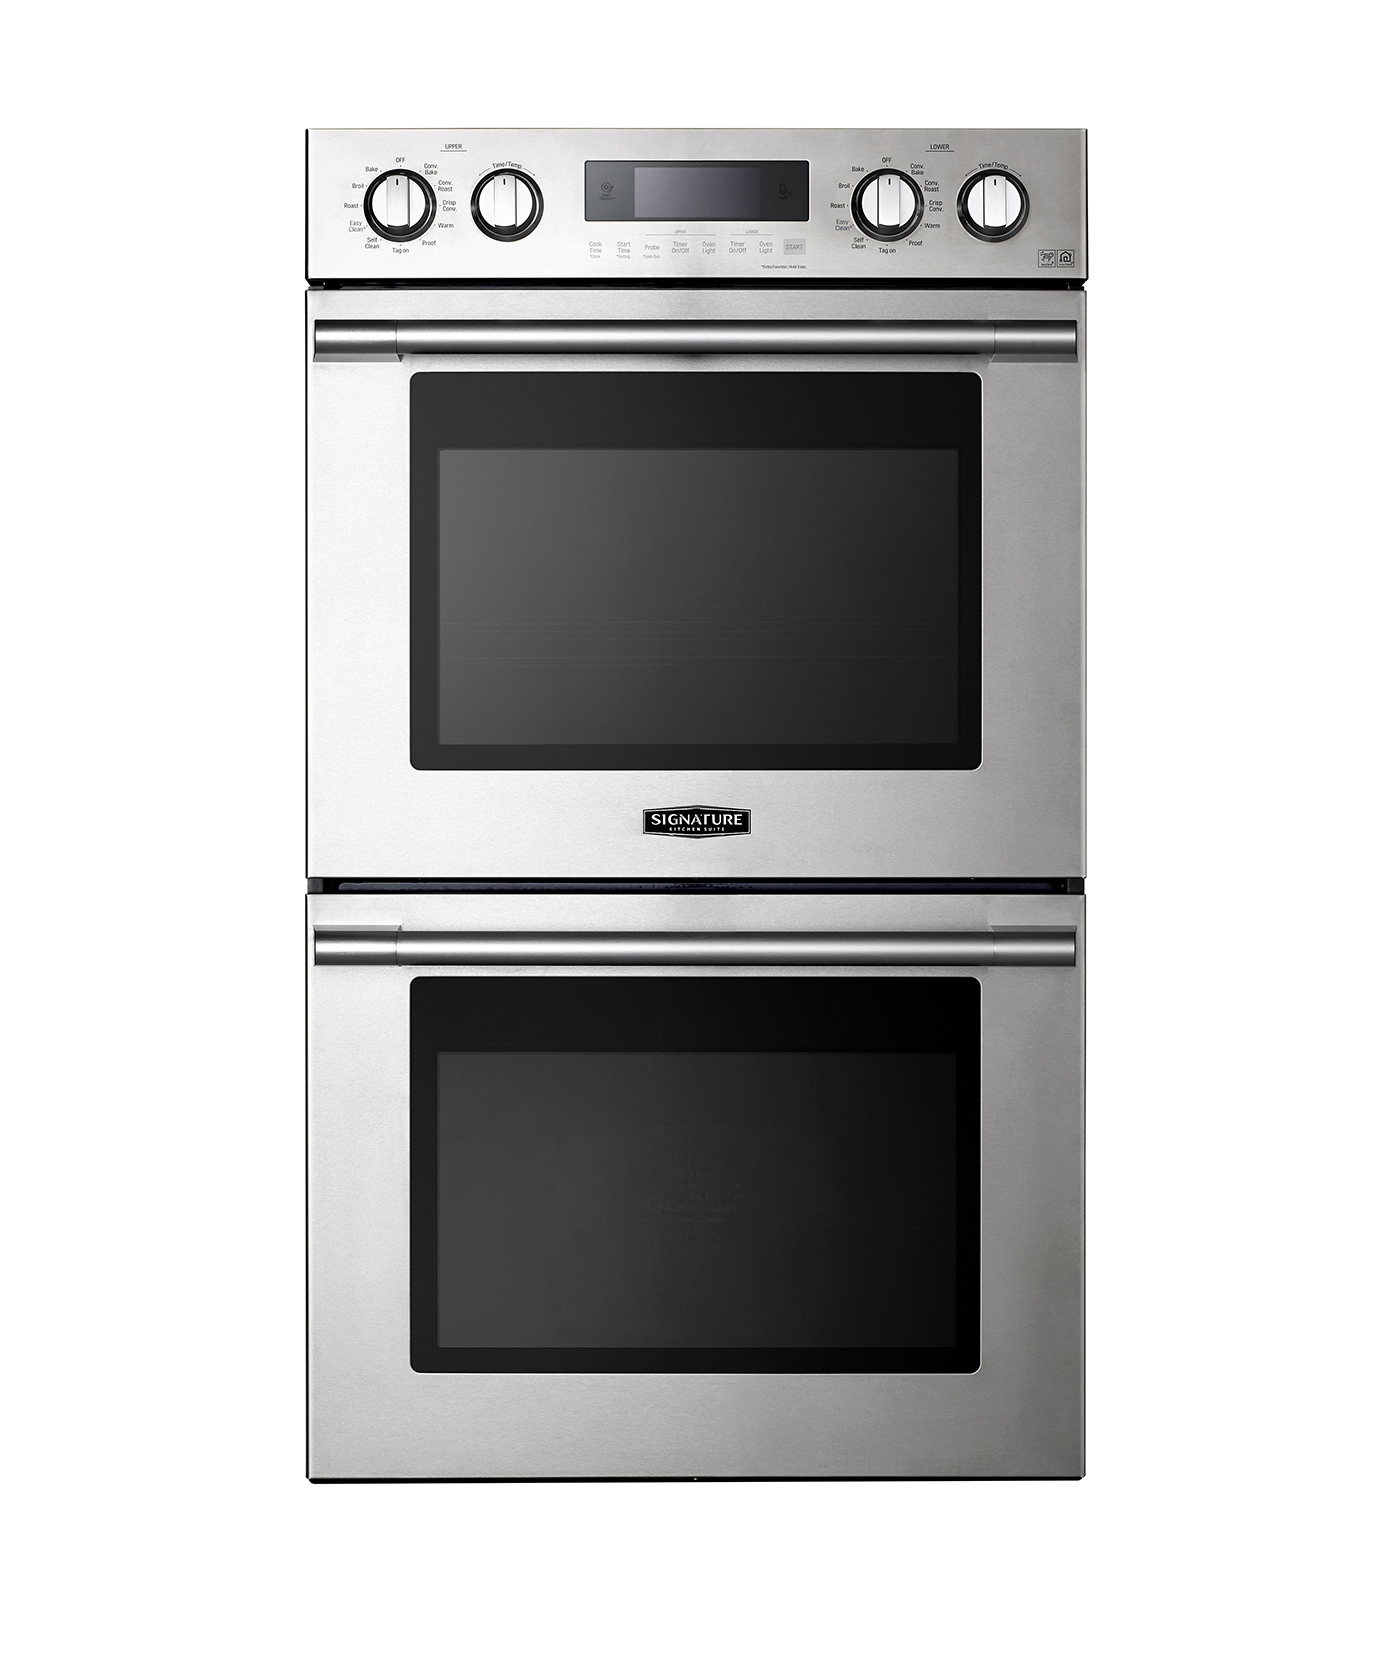 30-inch Double Wall Oven from Signature Kitchen Suite